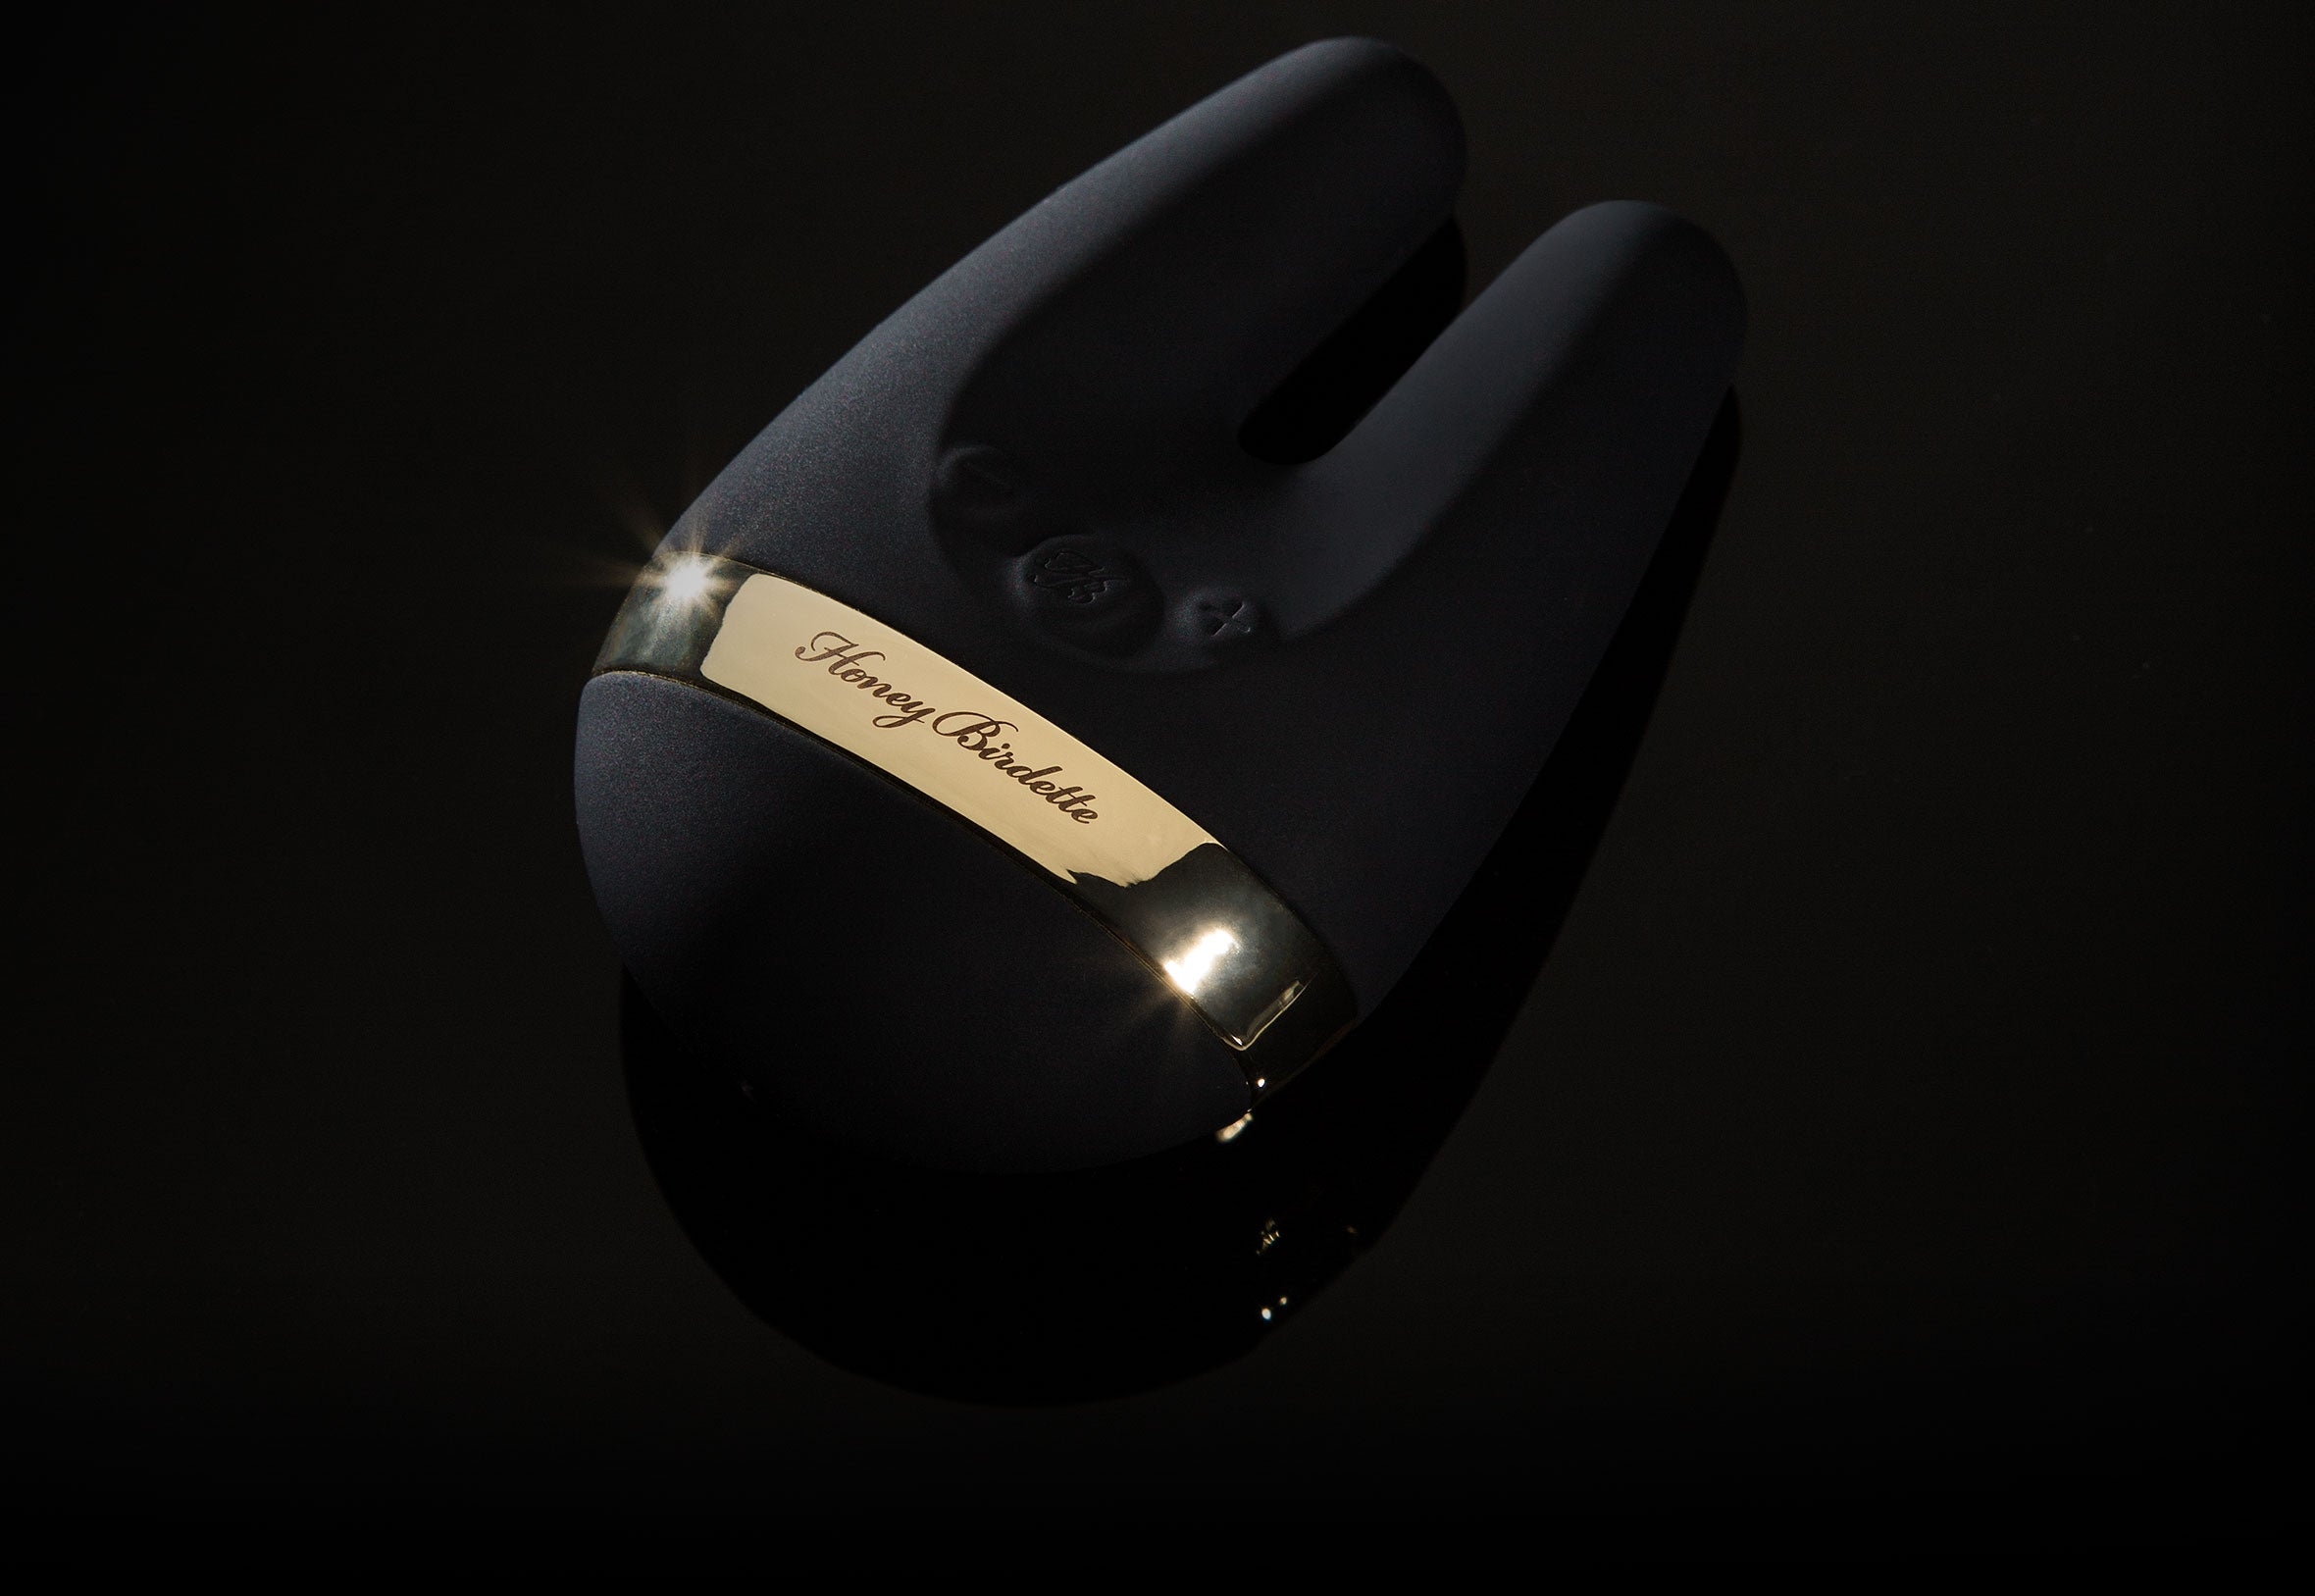 Venus waterproof vibrator product image | Honey Birdette Australia